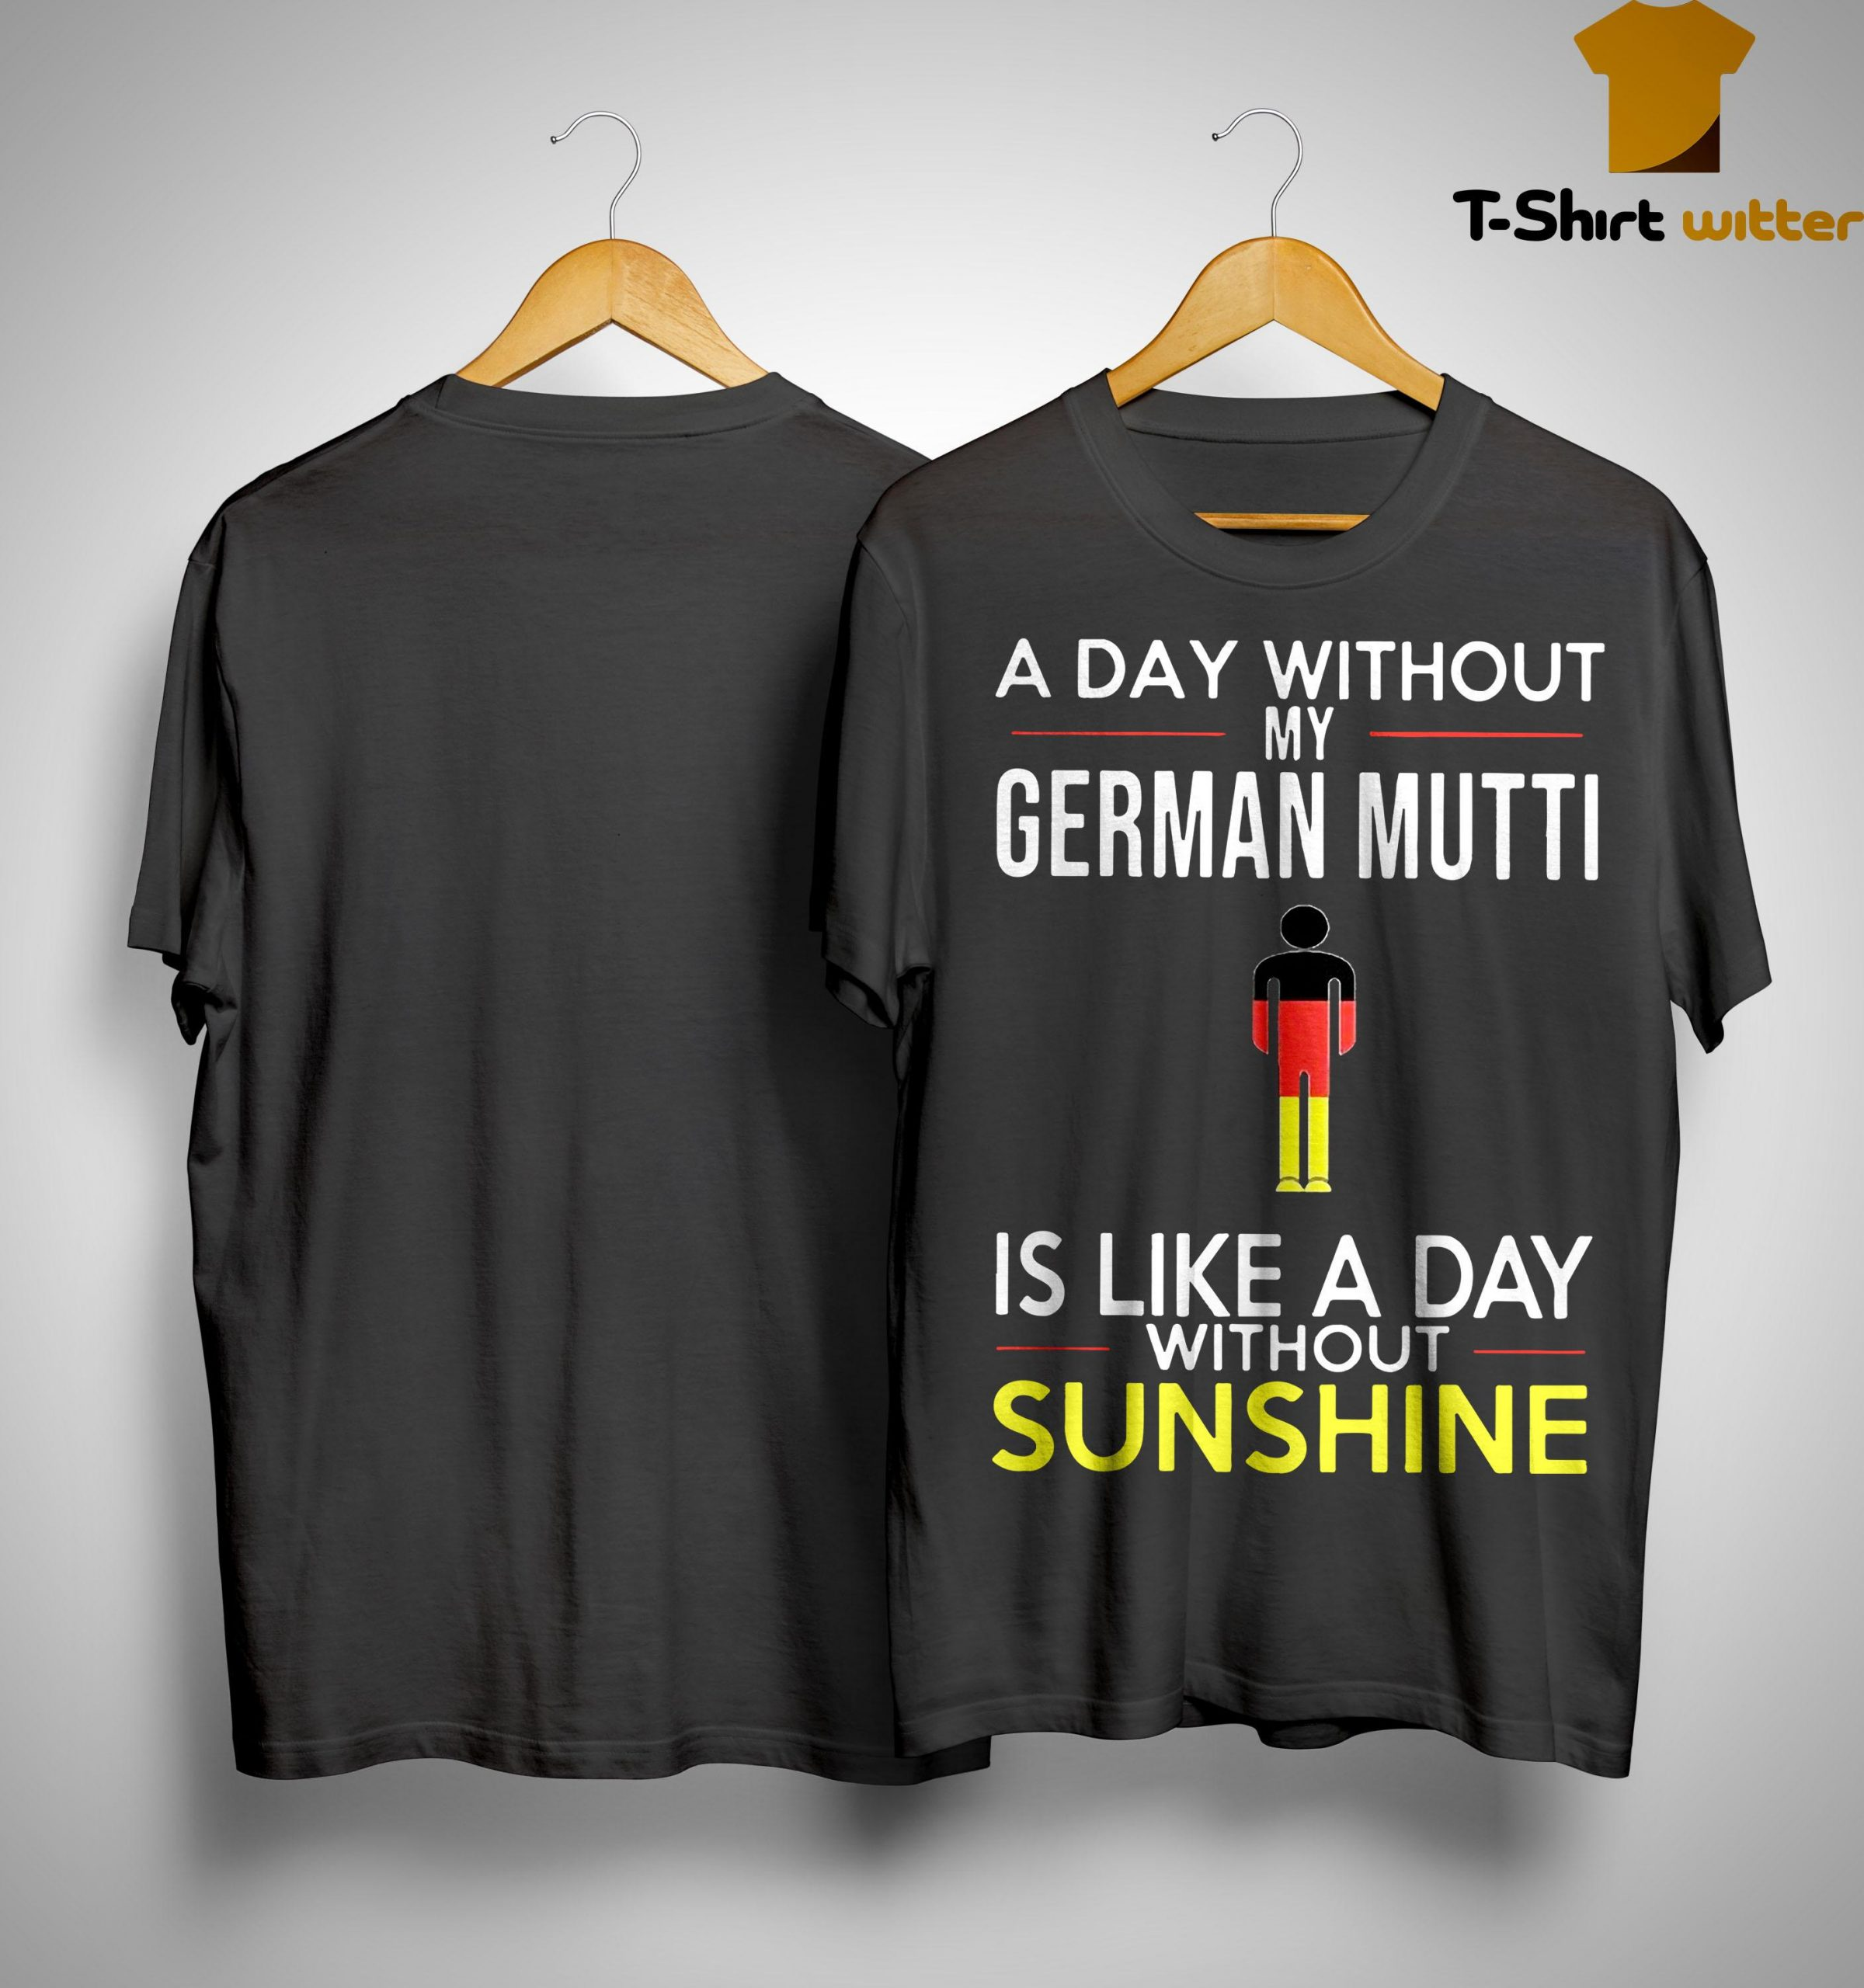 A Day Without My German Mutti Is Like A Day Without Sunshine Shirt